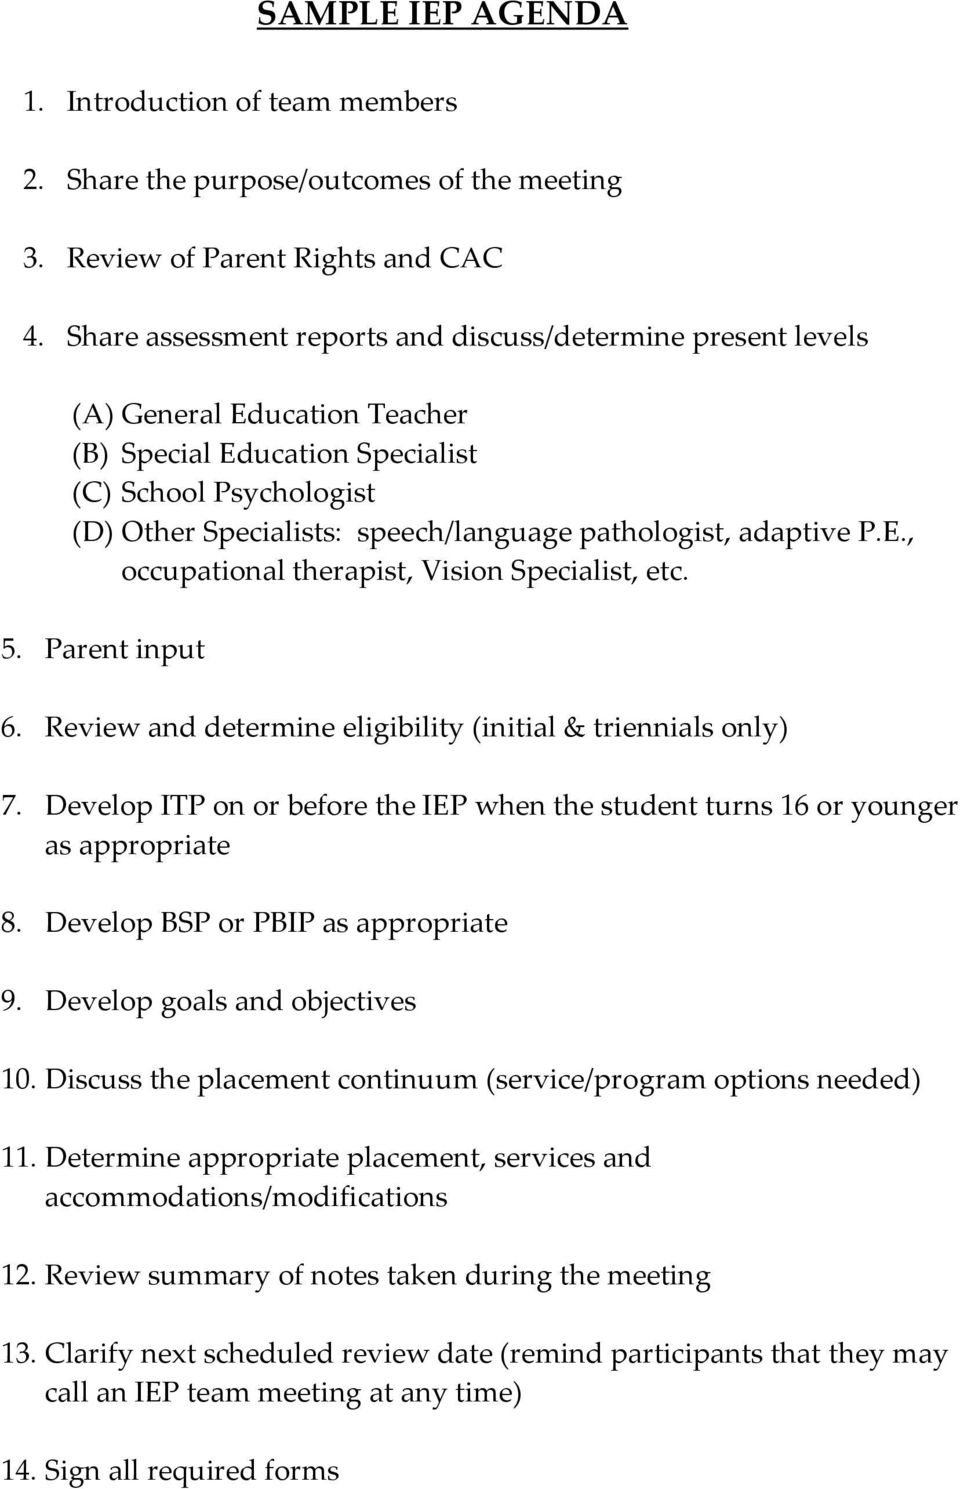 pathologist, adaptive P.E., occupational therapist, Vision Specialist, etc. 5. Parent input 6. Review and determine eligibility (initial & triennials only) 7.